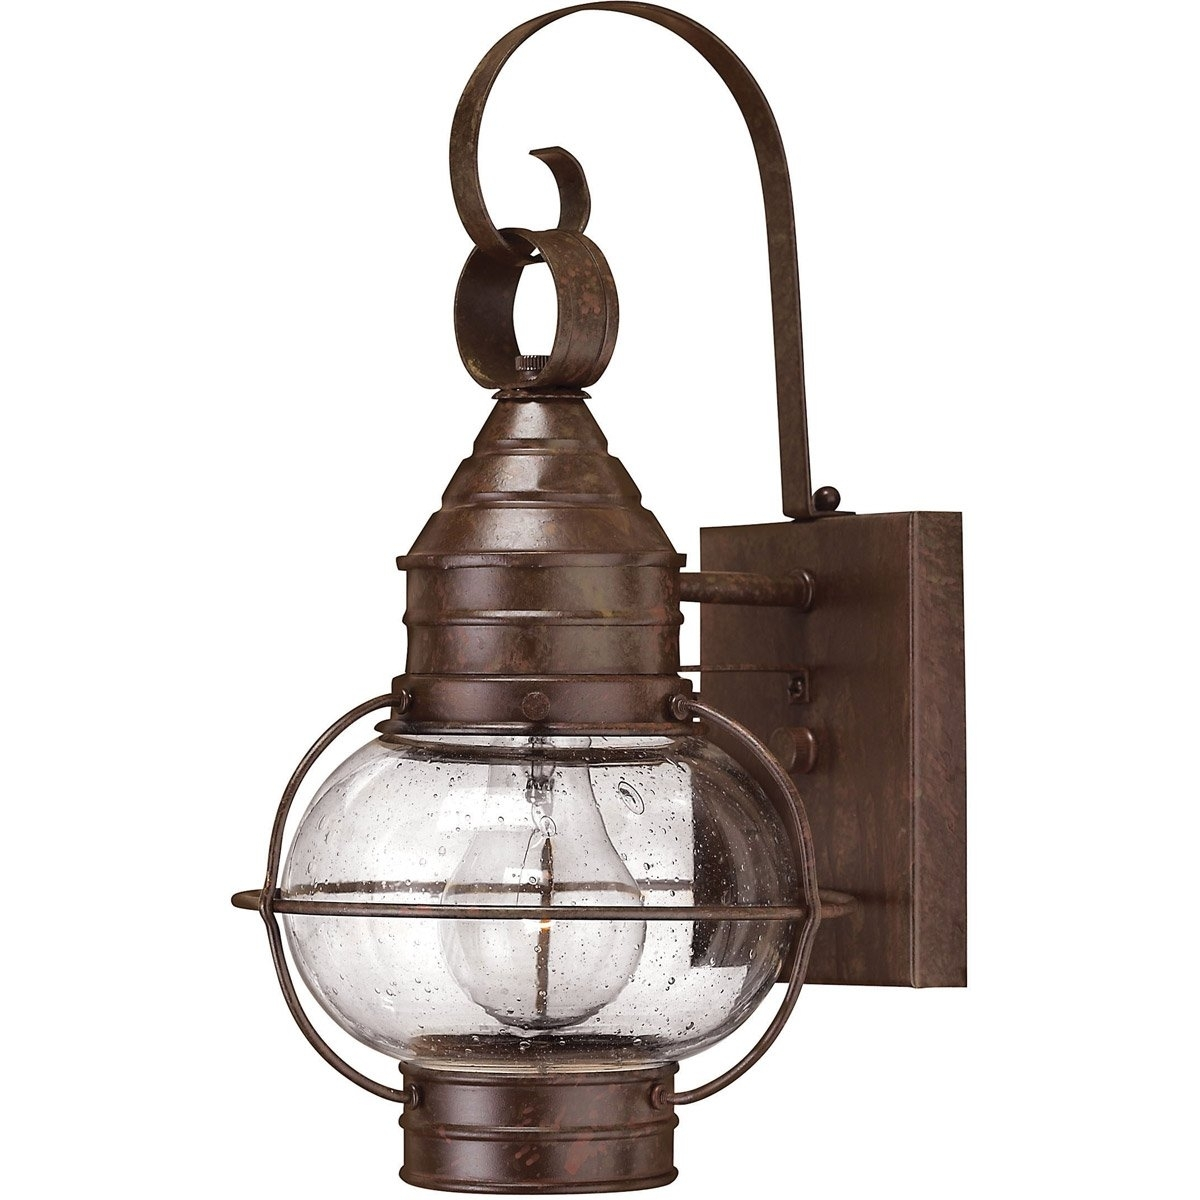 Hinkley Lighting 2206Sz Cape Cod 1 Light 14 Inch Sienna Bronze Pertaining To Mini Wall Mount Hinkley Lighting (#10 of 15)